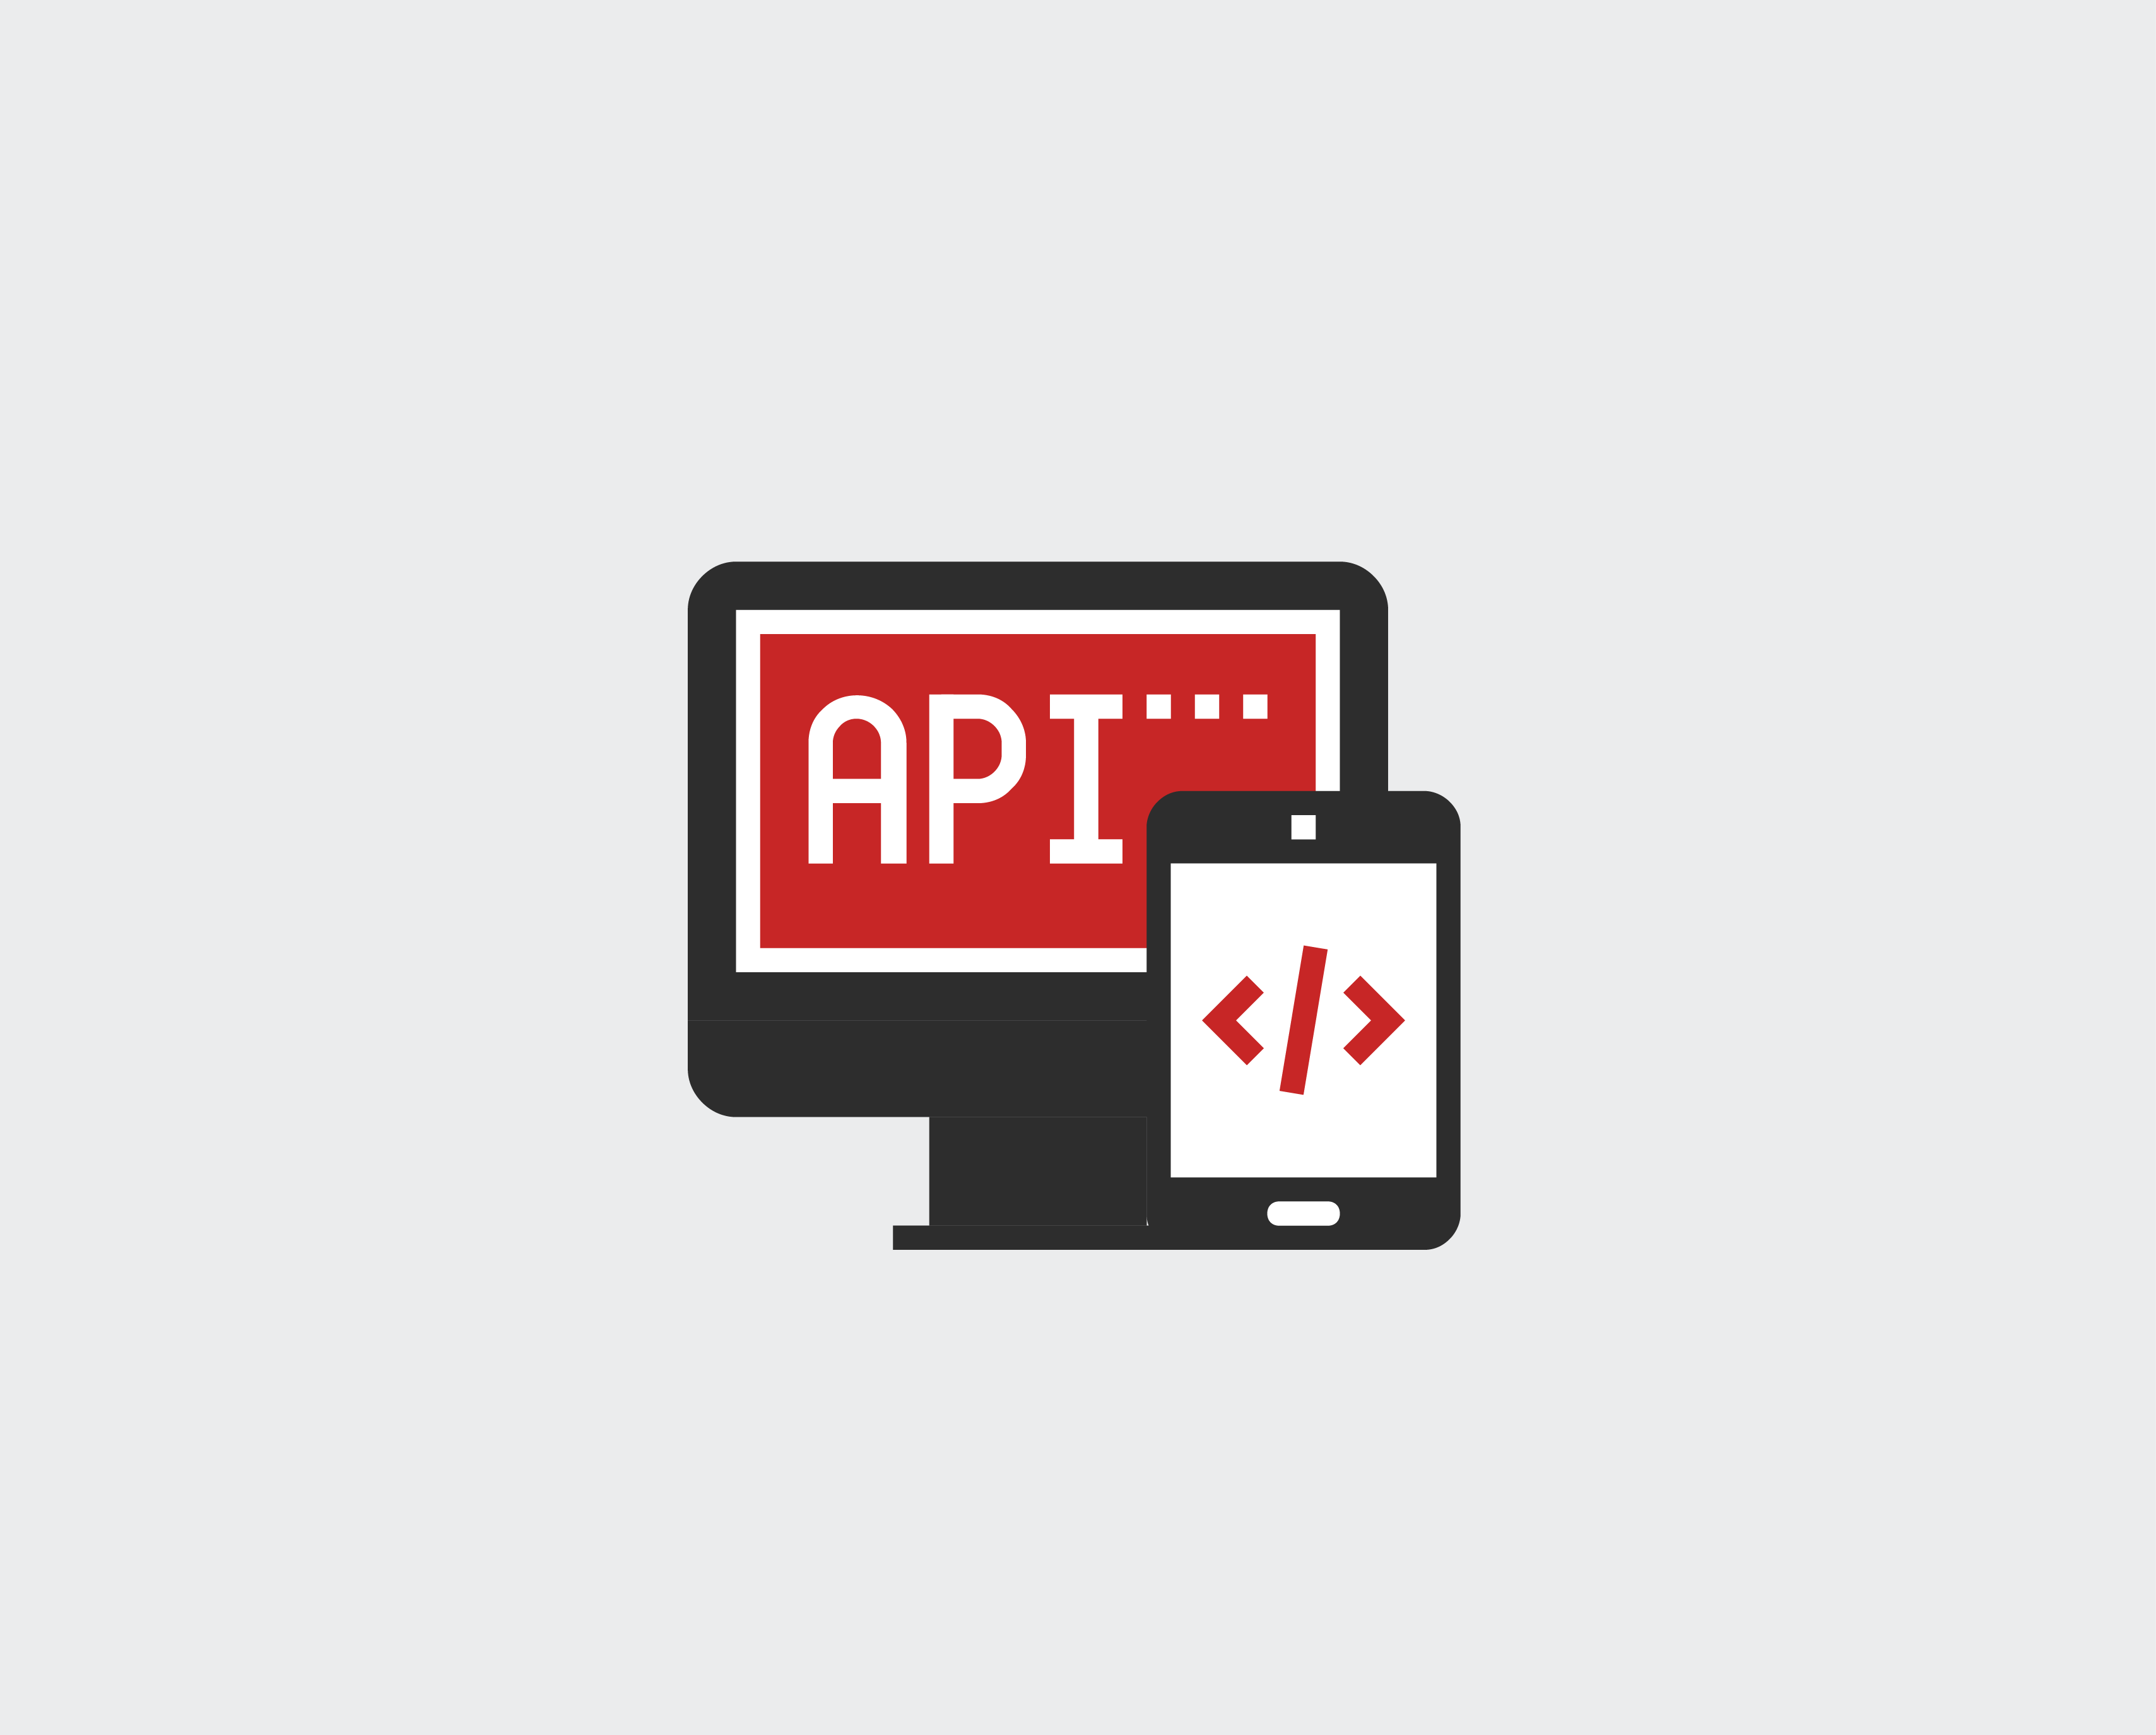 APIs, API, Application Programming Interfaces, Application Programming Interface, marketing, social media, webhosting, websites, web developer, web development, technology, websites, domains